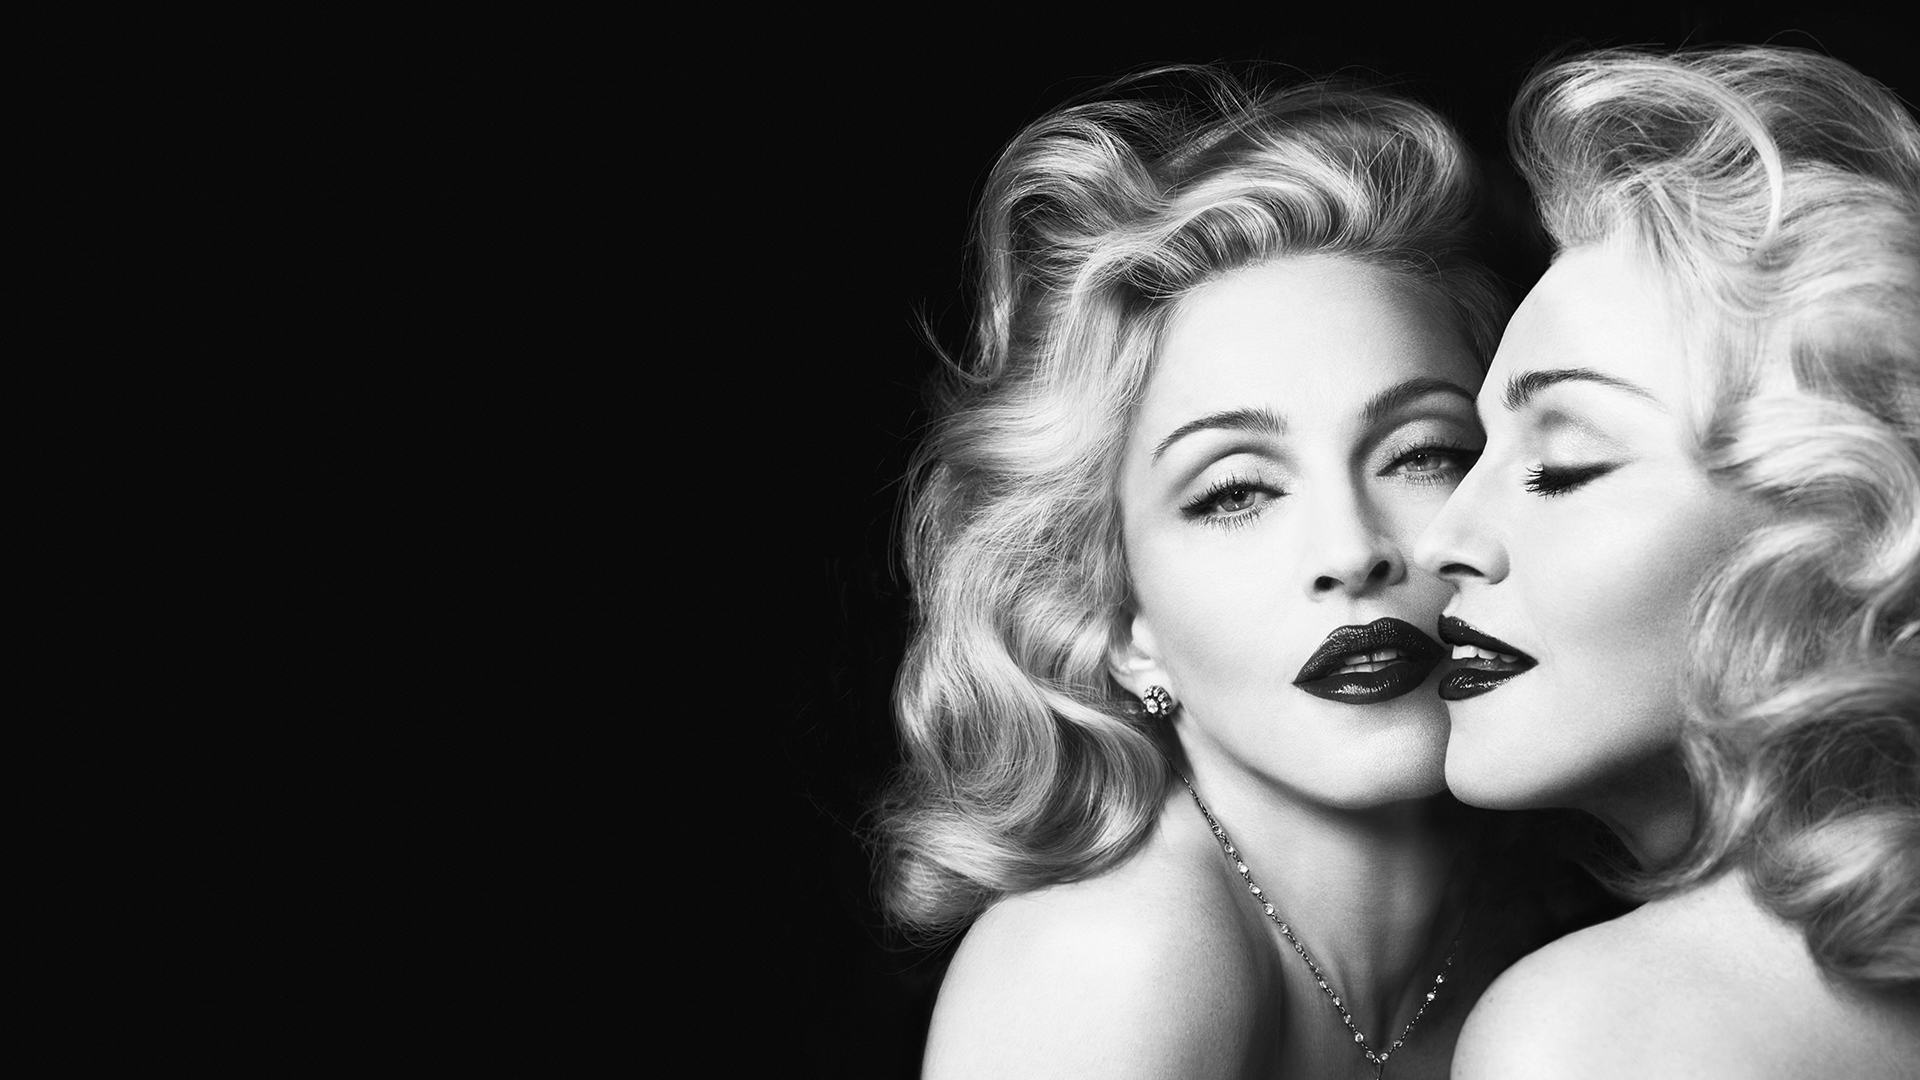 madonna full hd wallpaper and background 1920x1080 id